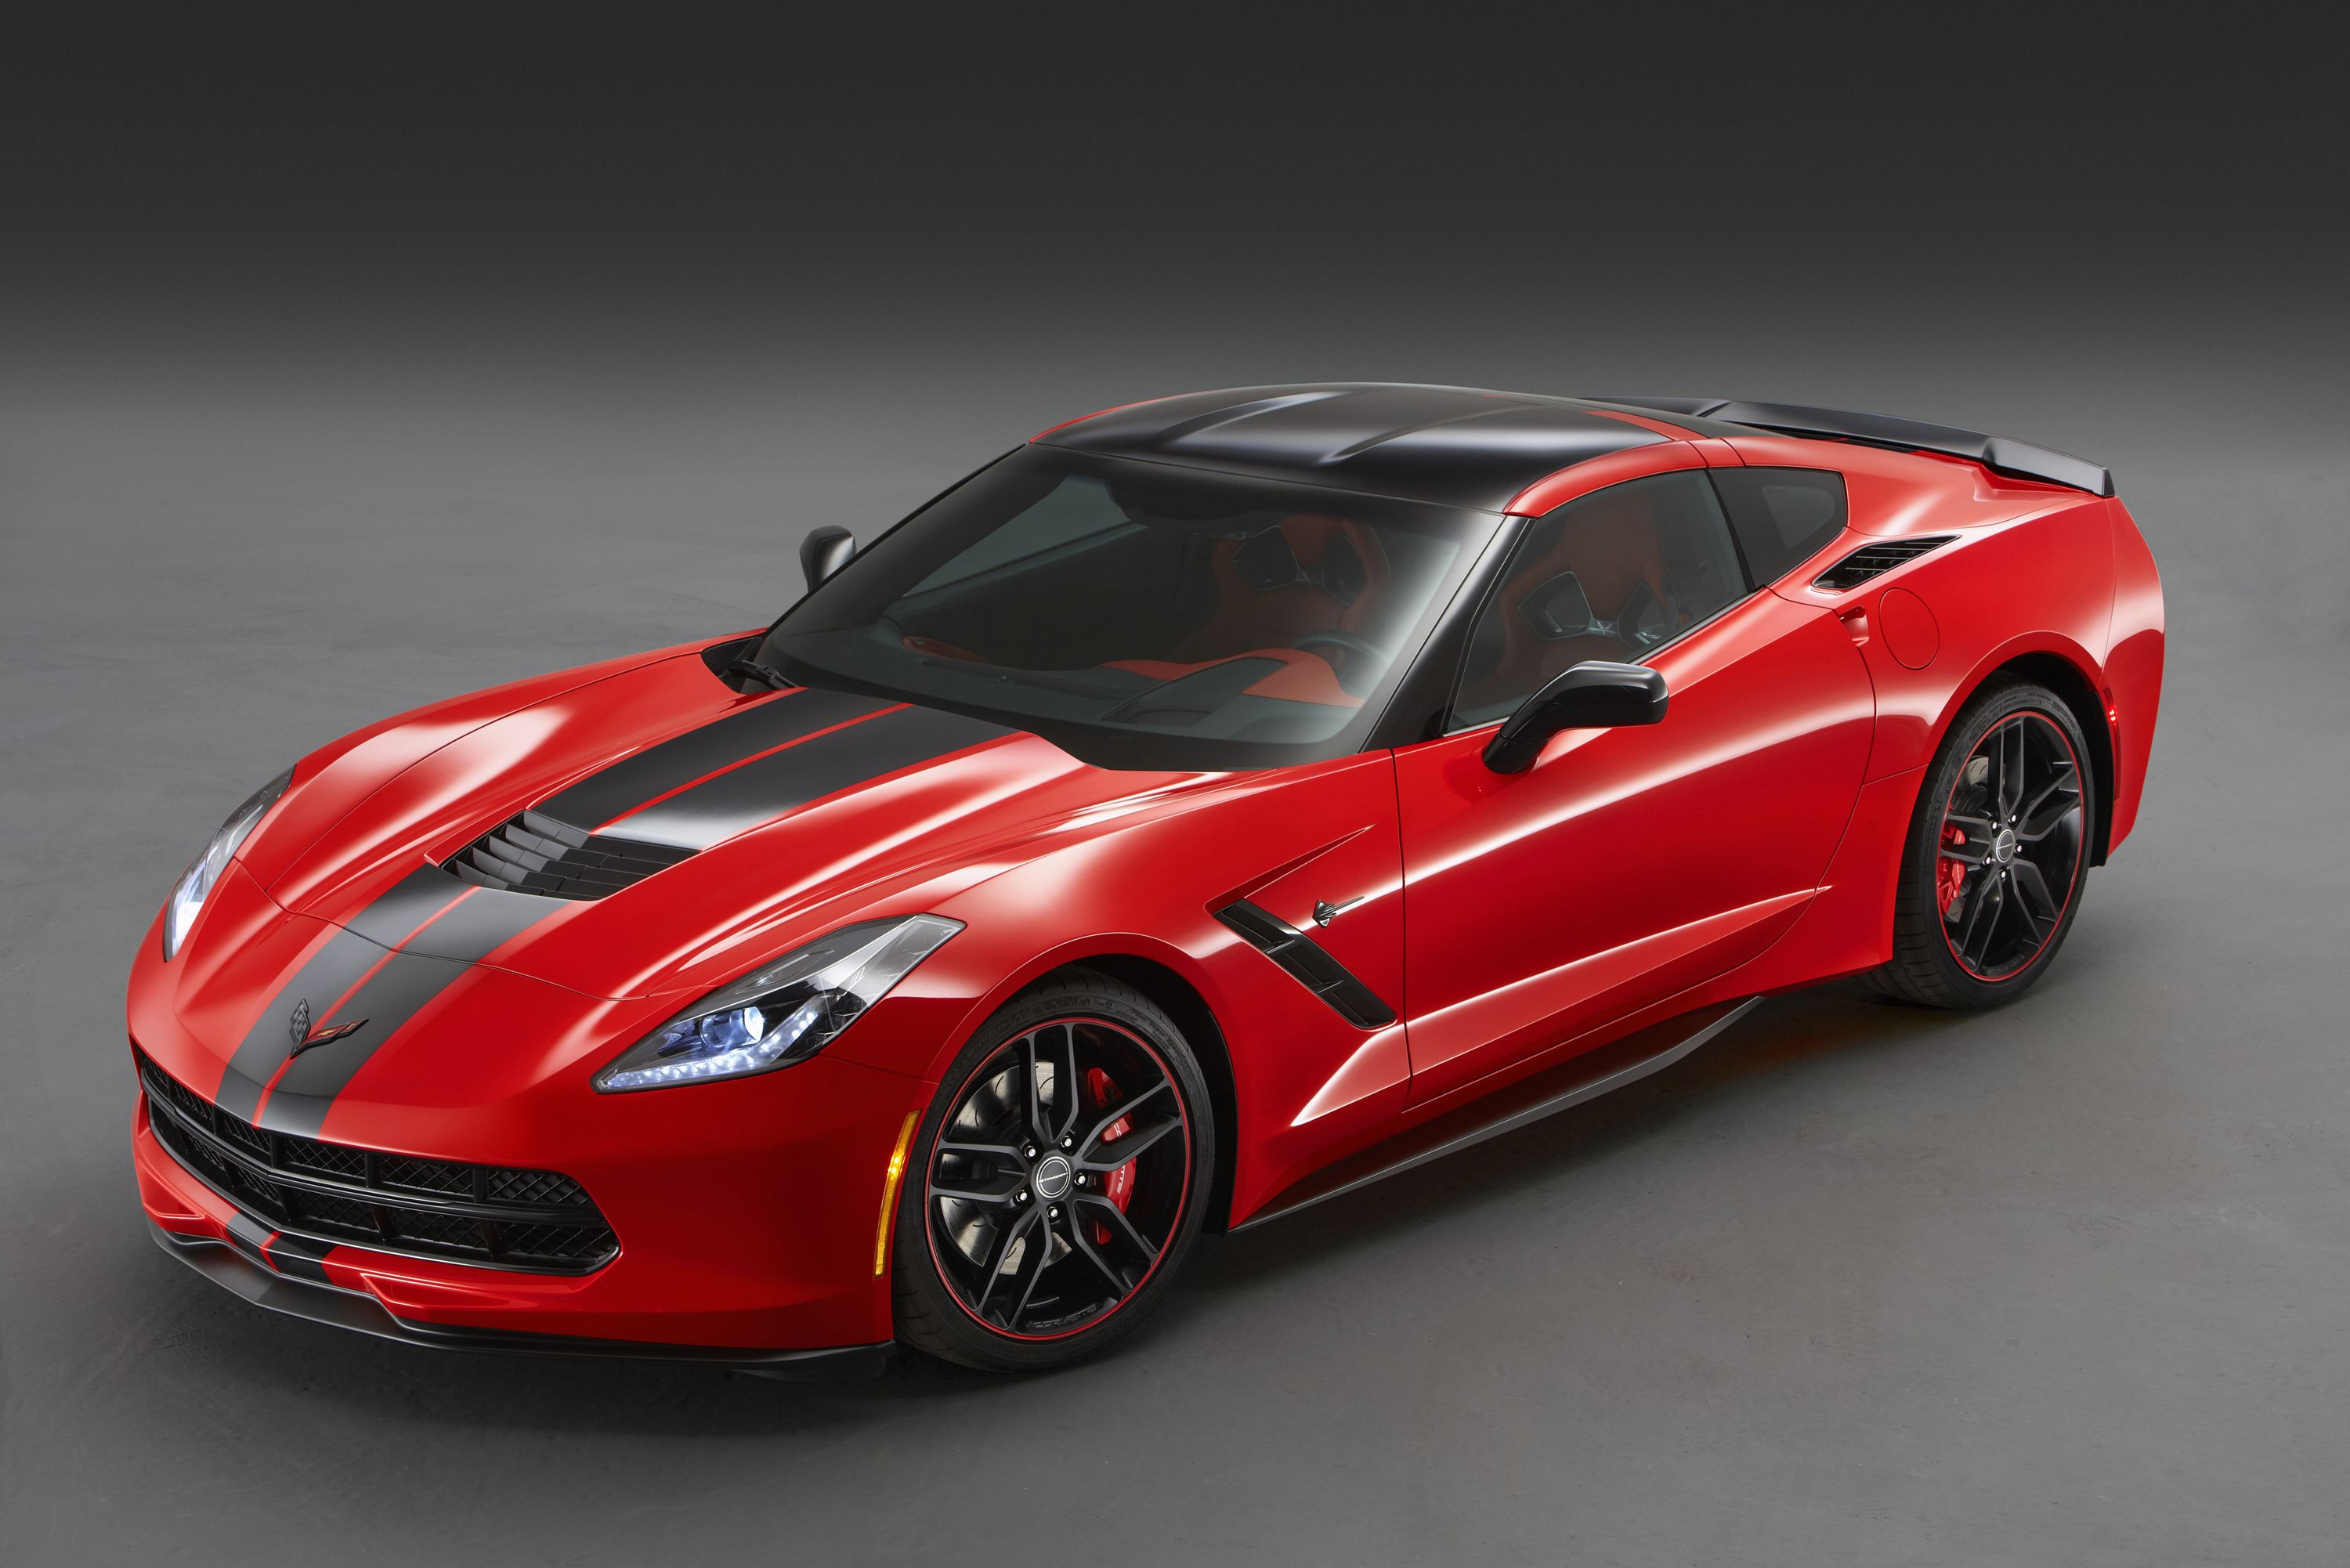 Corvette Stingray Coupe Pacific Concept Chevrolet Corvette Stingray Corvette Stingray 2015 Corvette